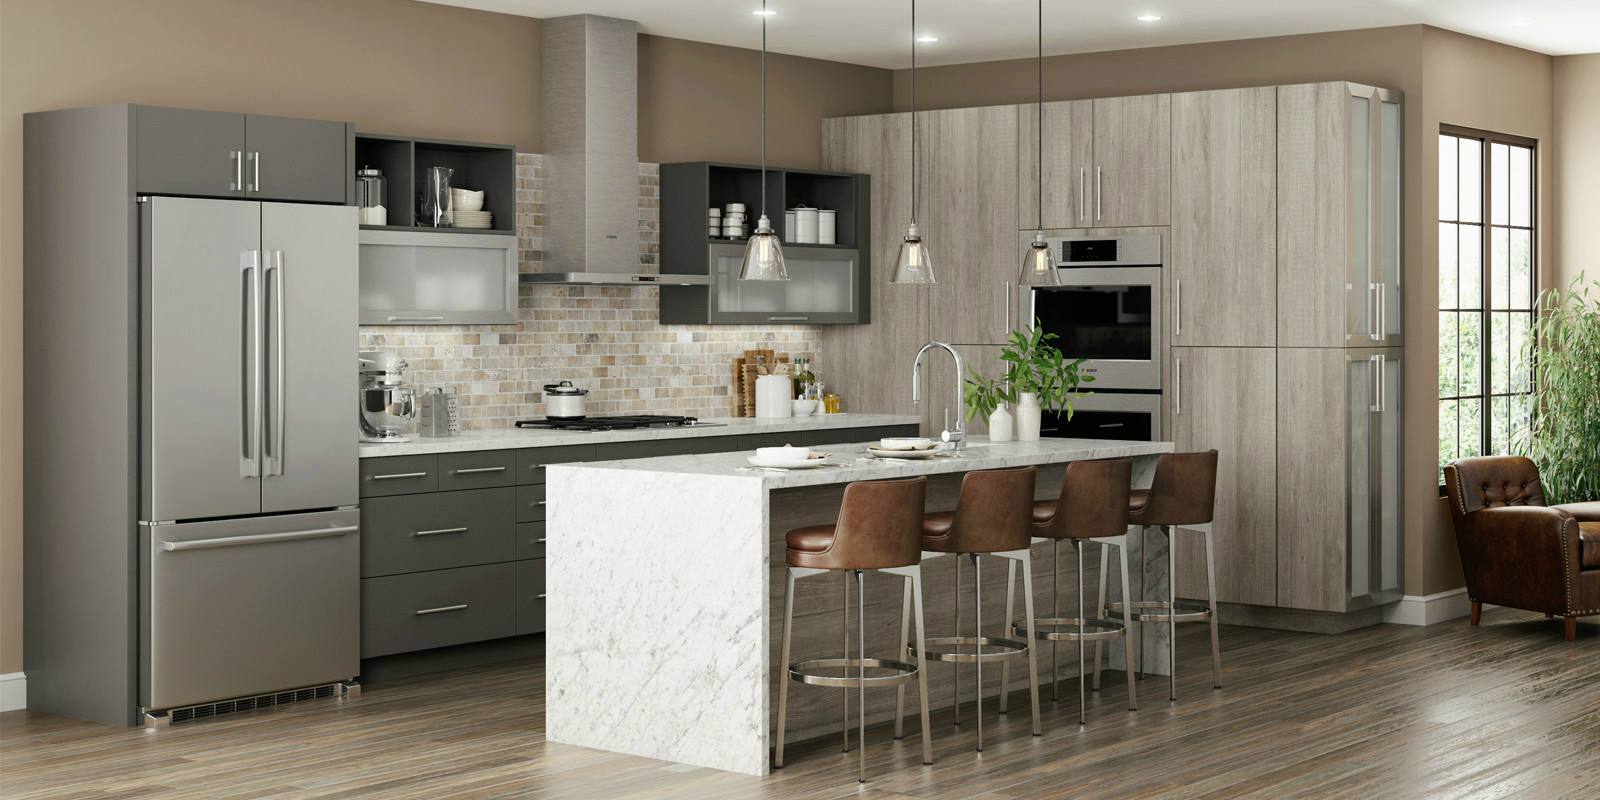 Latitude Cabinets At Lowe's Modern Frameless Kitchen And Bath Cabinets